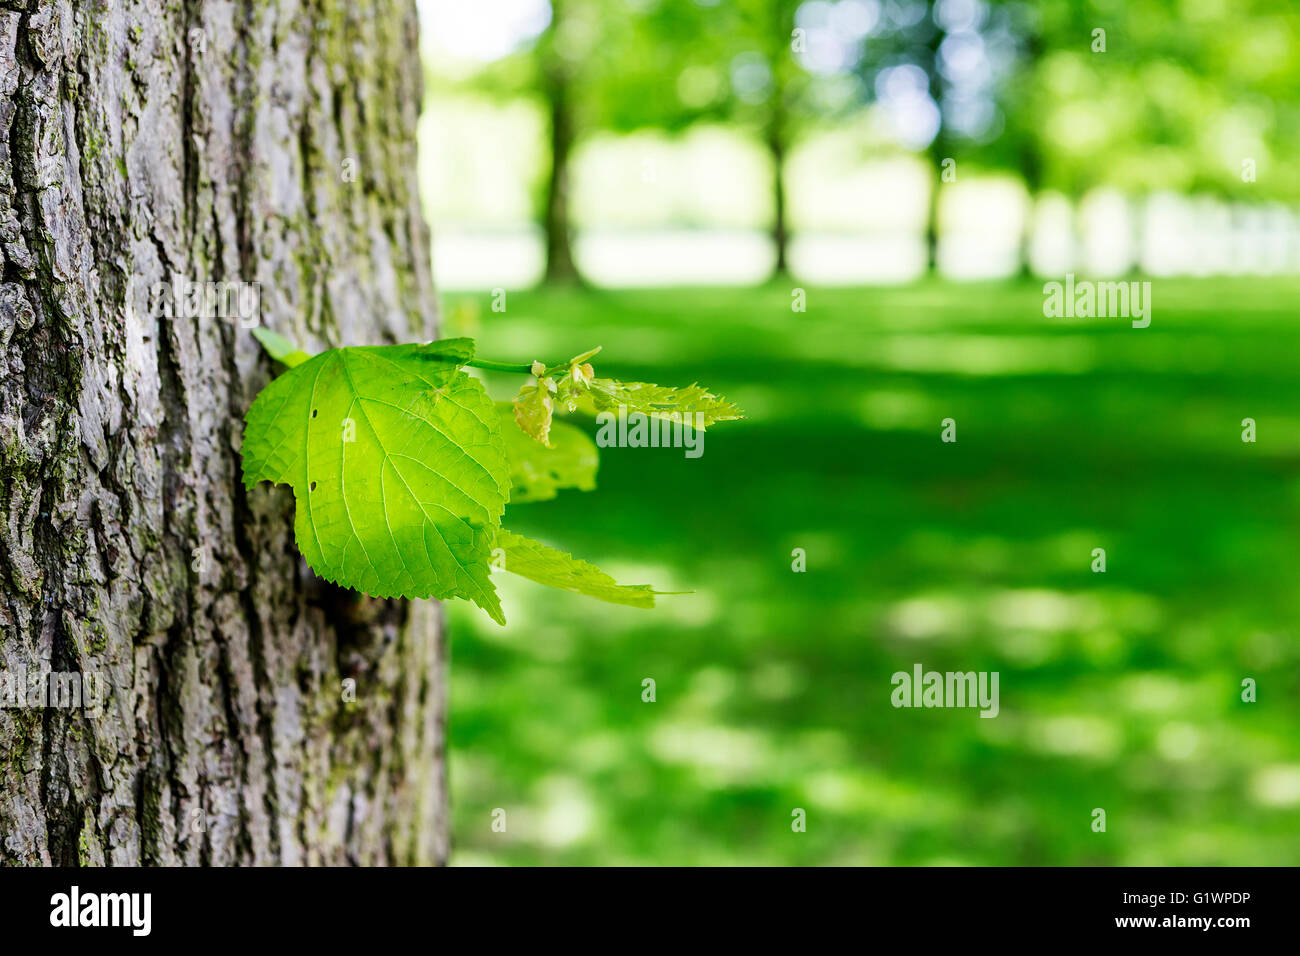 Close up of a leaf on the trunk of a tree in an avenue of lime trees at Marbury country park, Comberbach, Northwich, Stock Photo